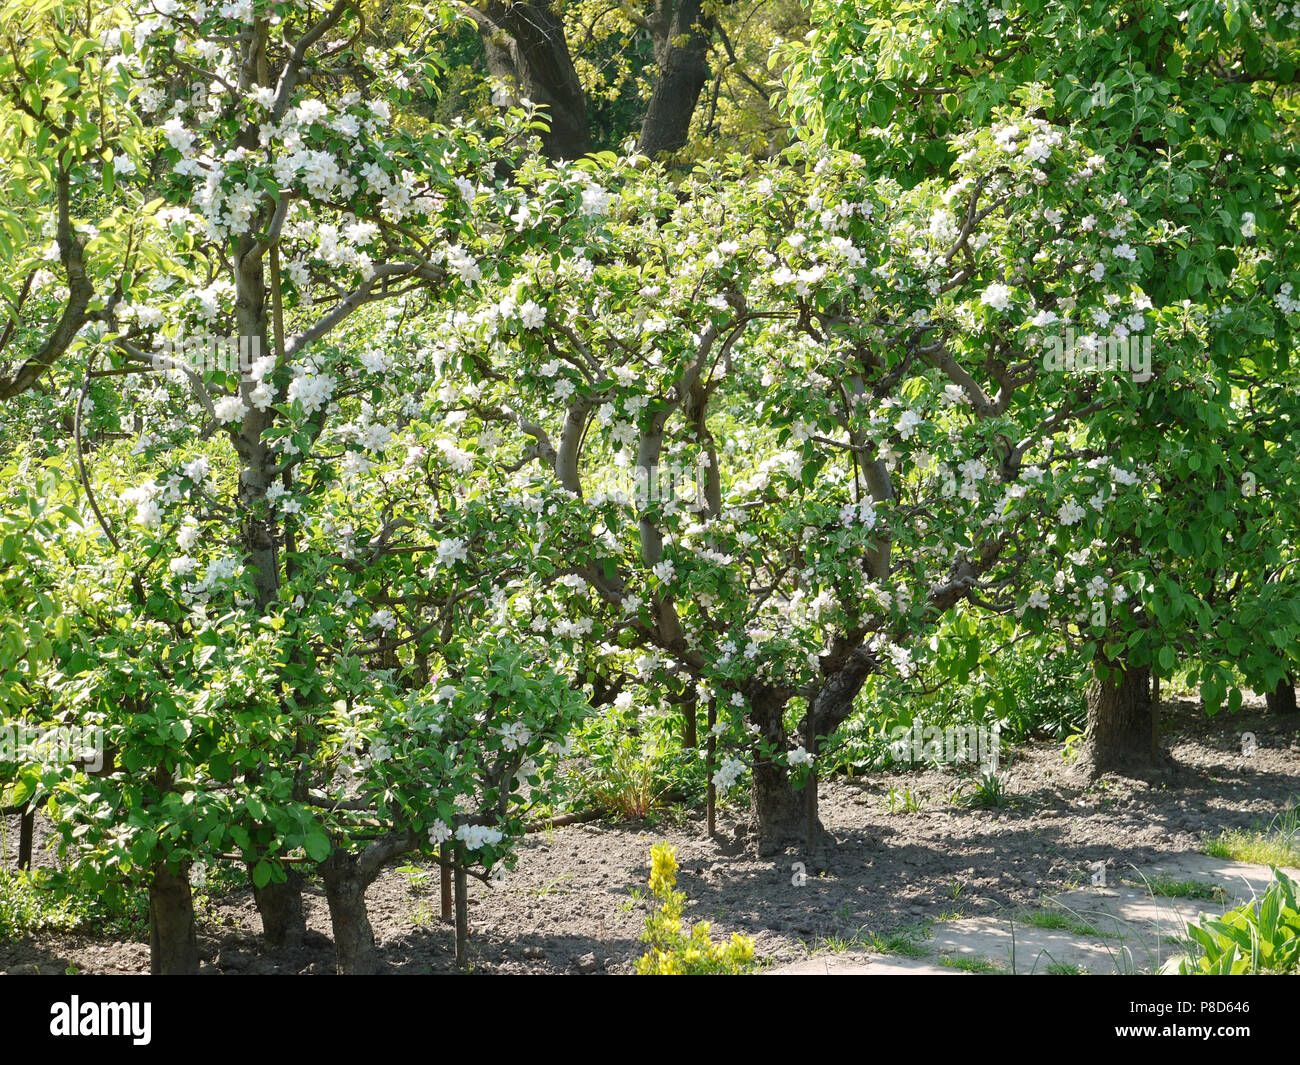 A Few Nearby Apple Trees With Beautiful Blooming White Flowers And